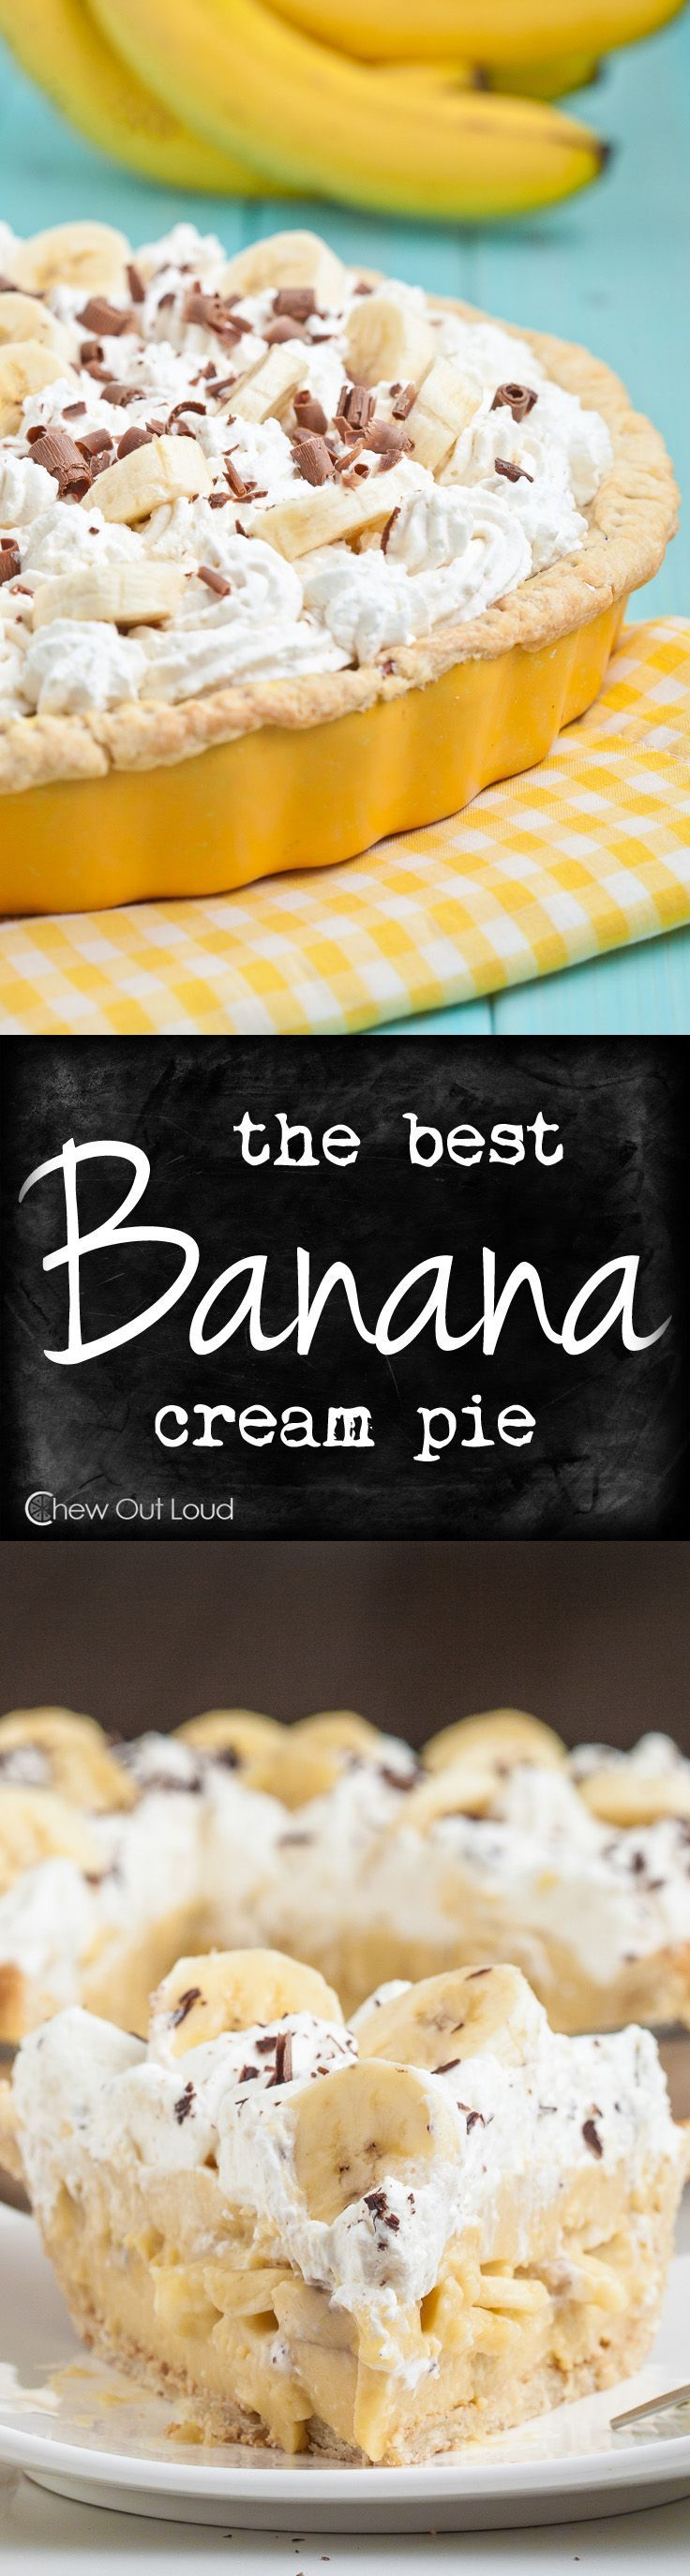 The filling is velvety, creamy, luscious. Loaded with bananas and only bananas. On a flaky all-butter crust. Irresistible. #banana #pie #recipe